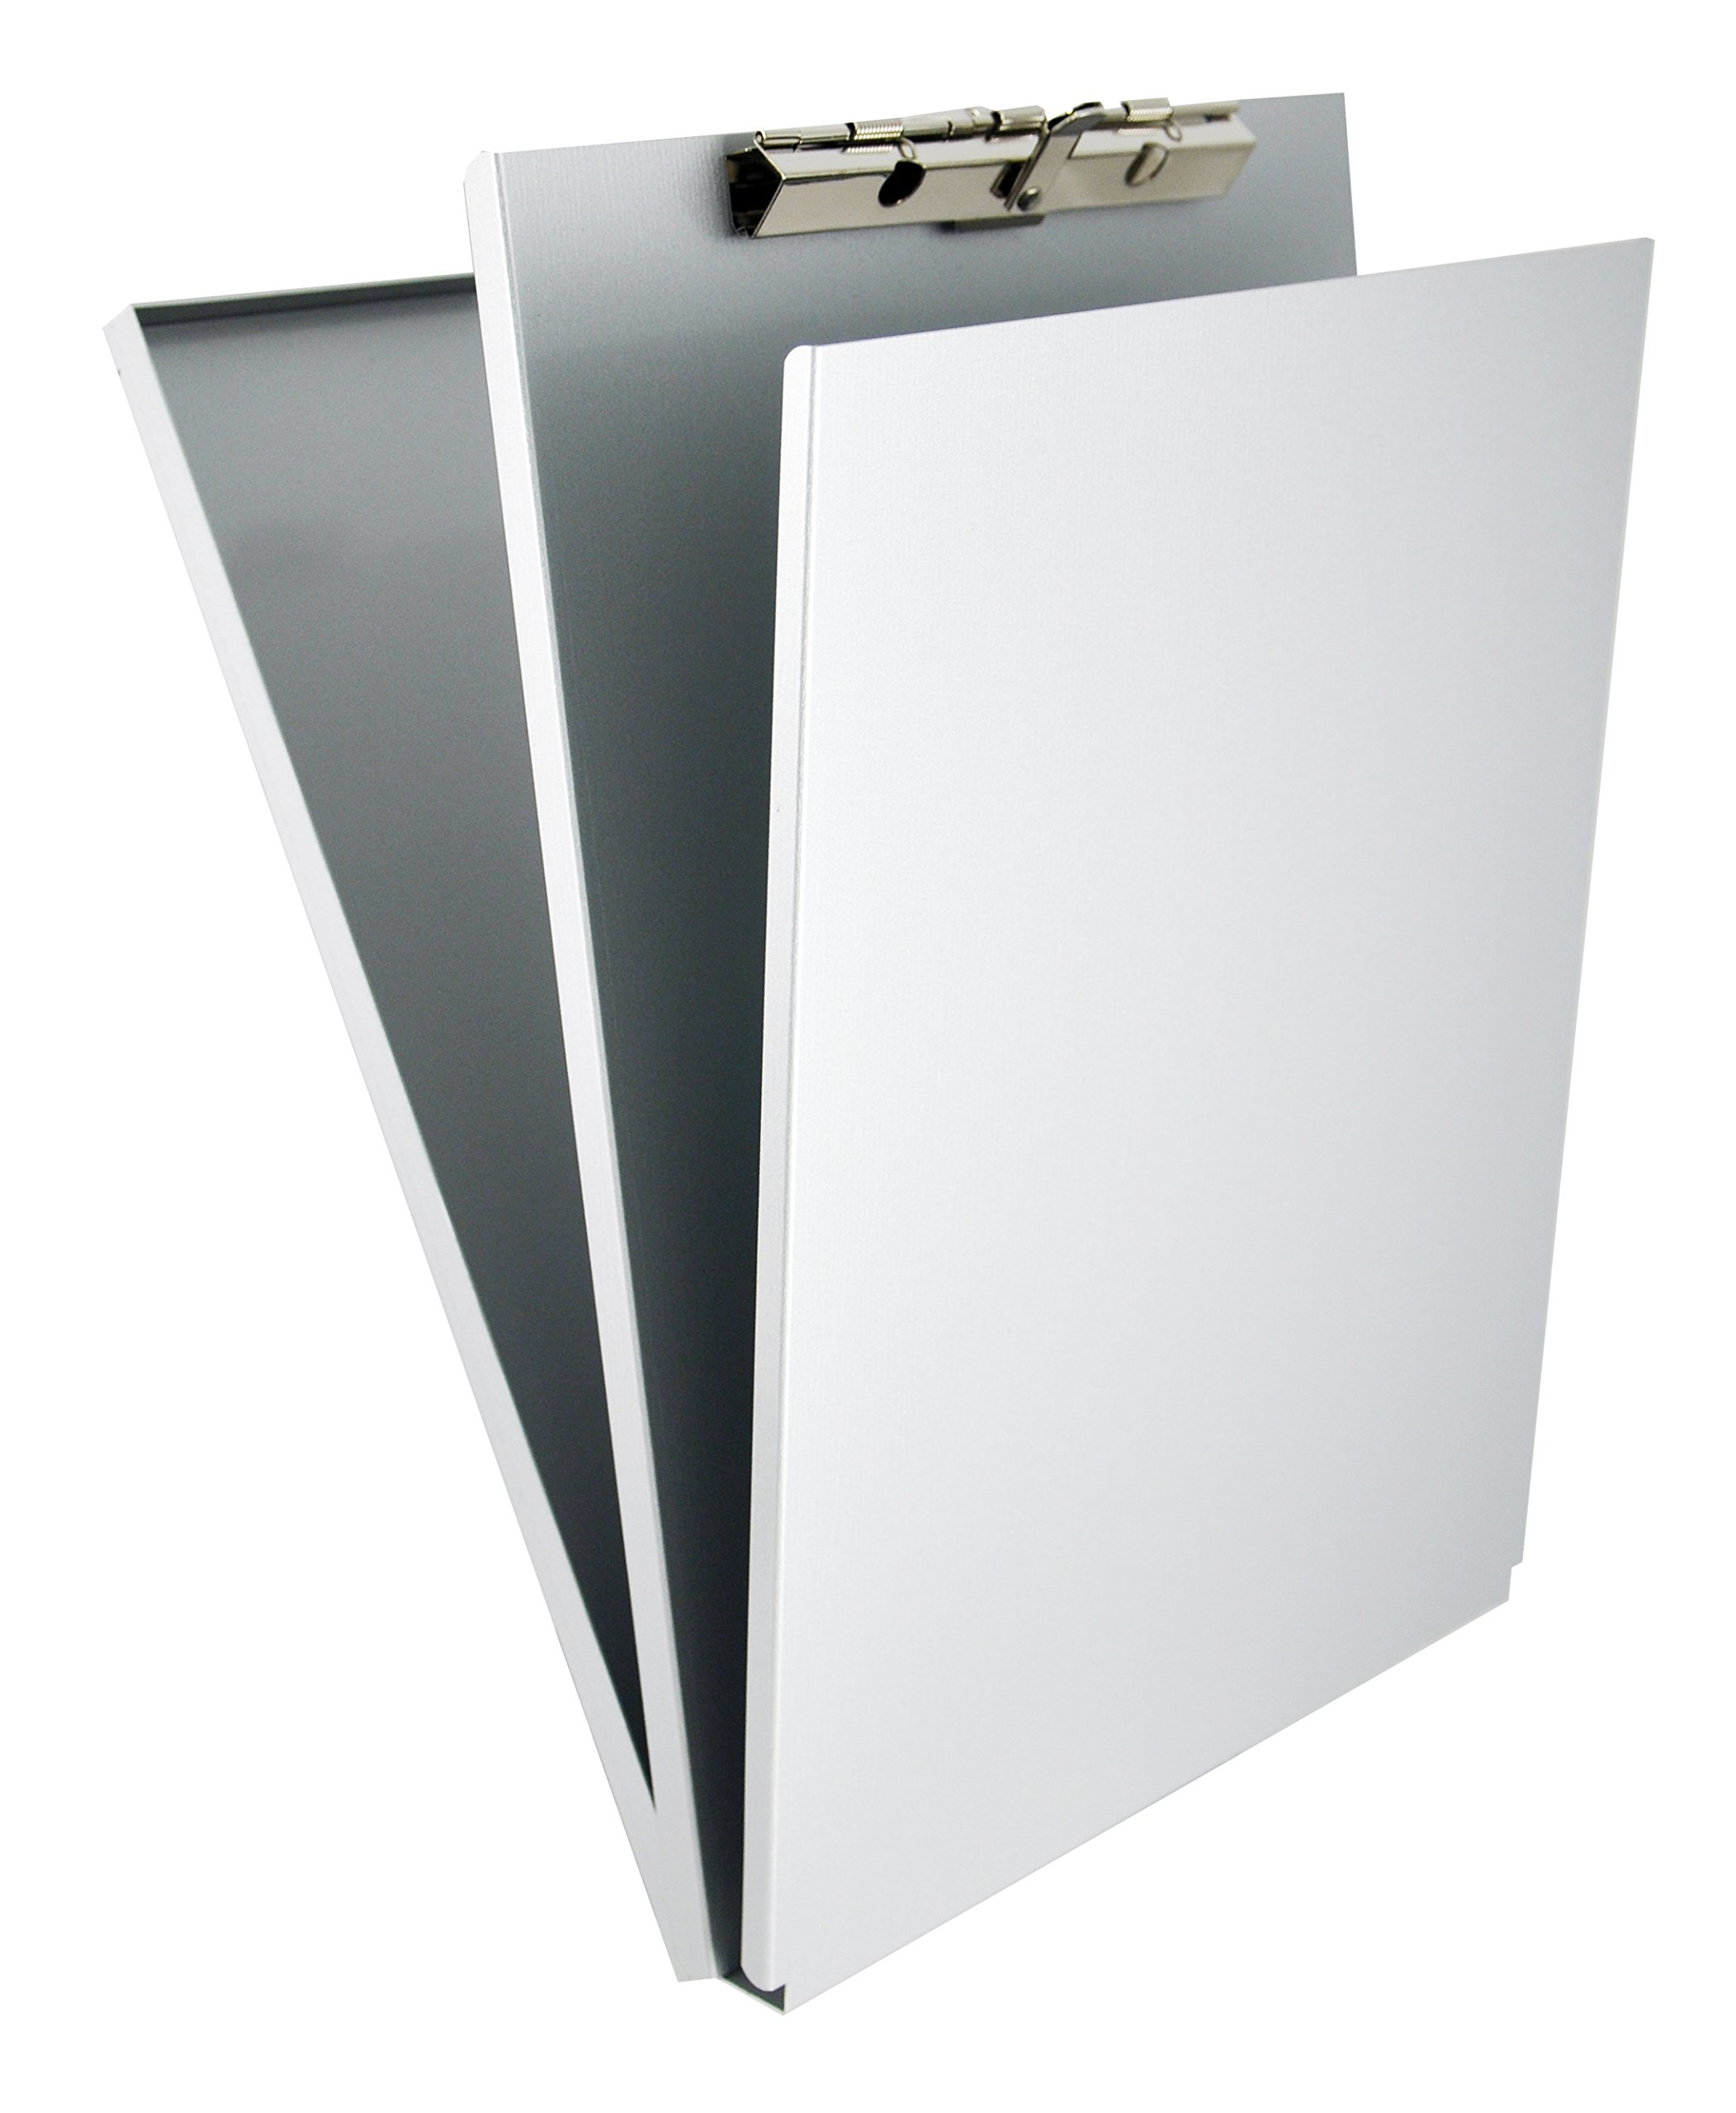 Saunders Recycled Aluminum A-Holder Form Holder – Letter Size Form Holder with Hinged Writing Plate. Office Supplies